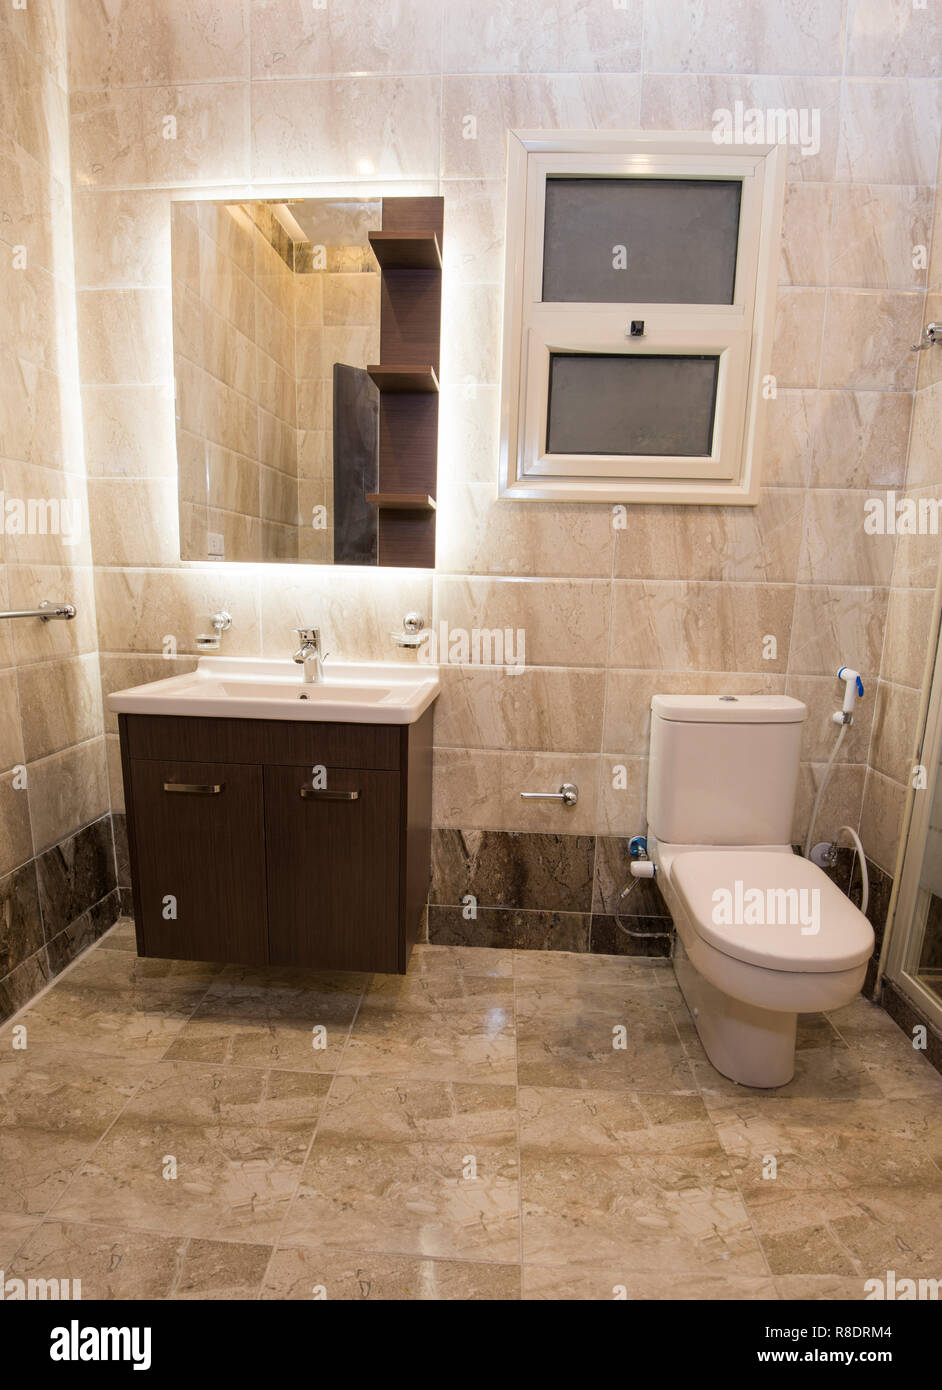 Interior Design Of A Luxury Show Home Bathroom With Sink Unit And